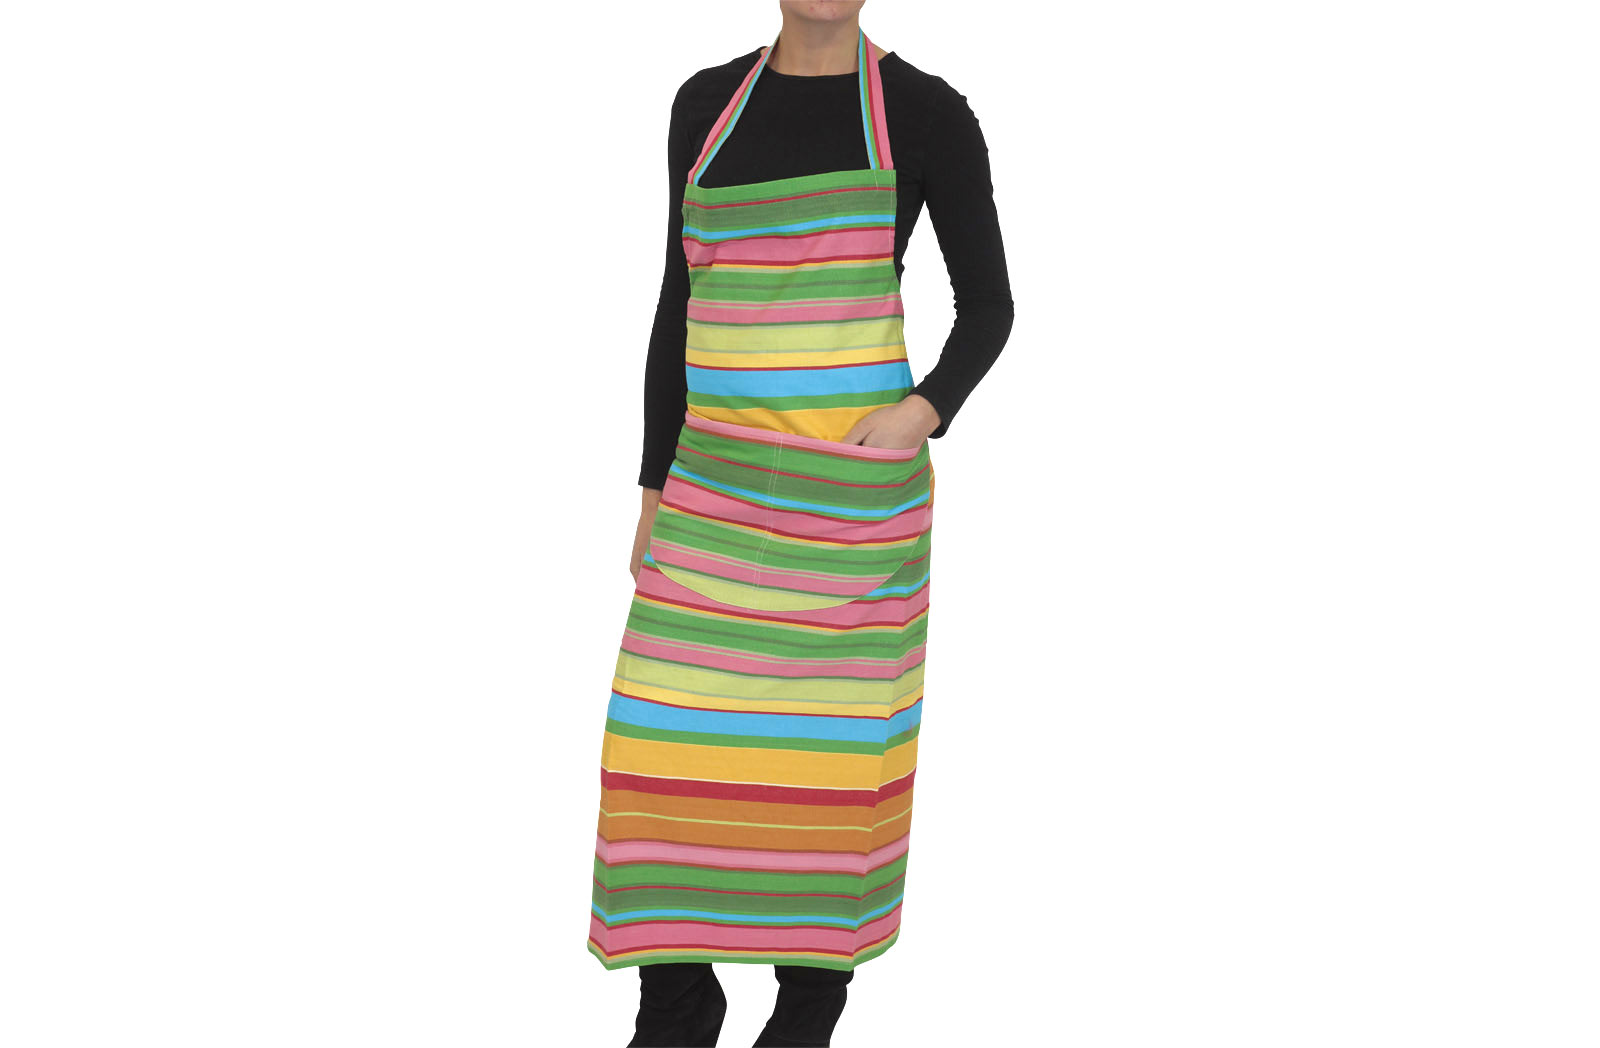 Pink, Green, Turquoise Striped Apron from The Stripes Company